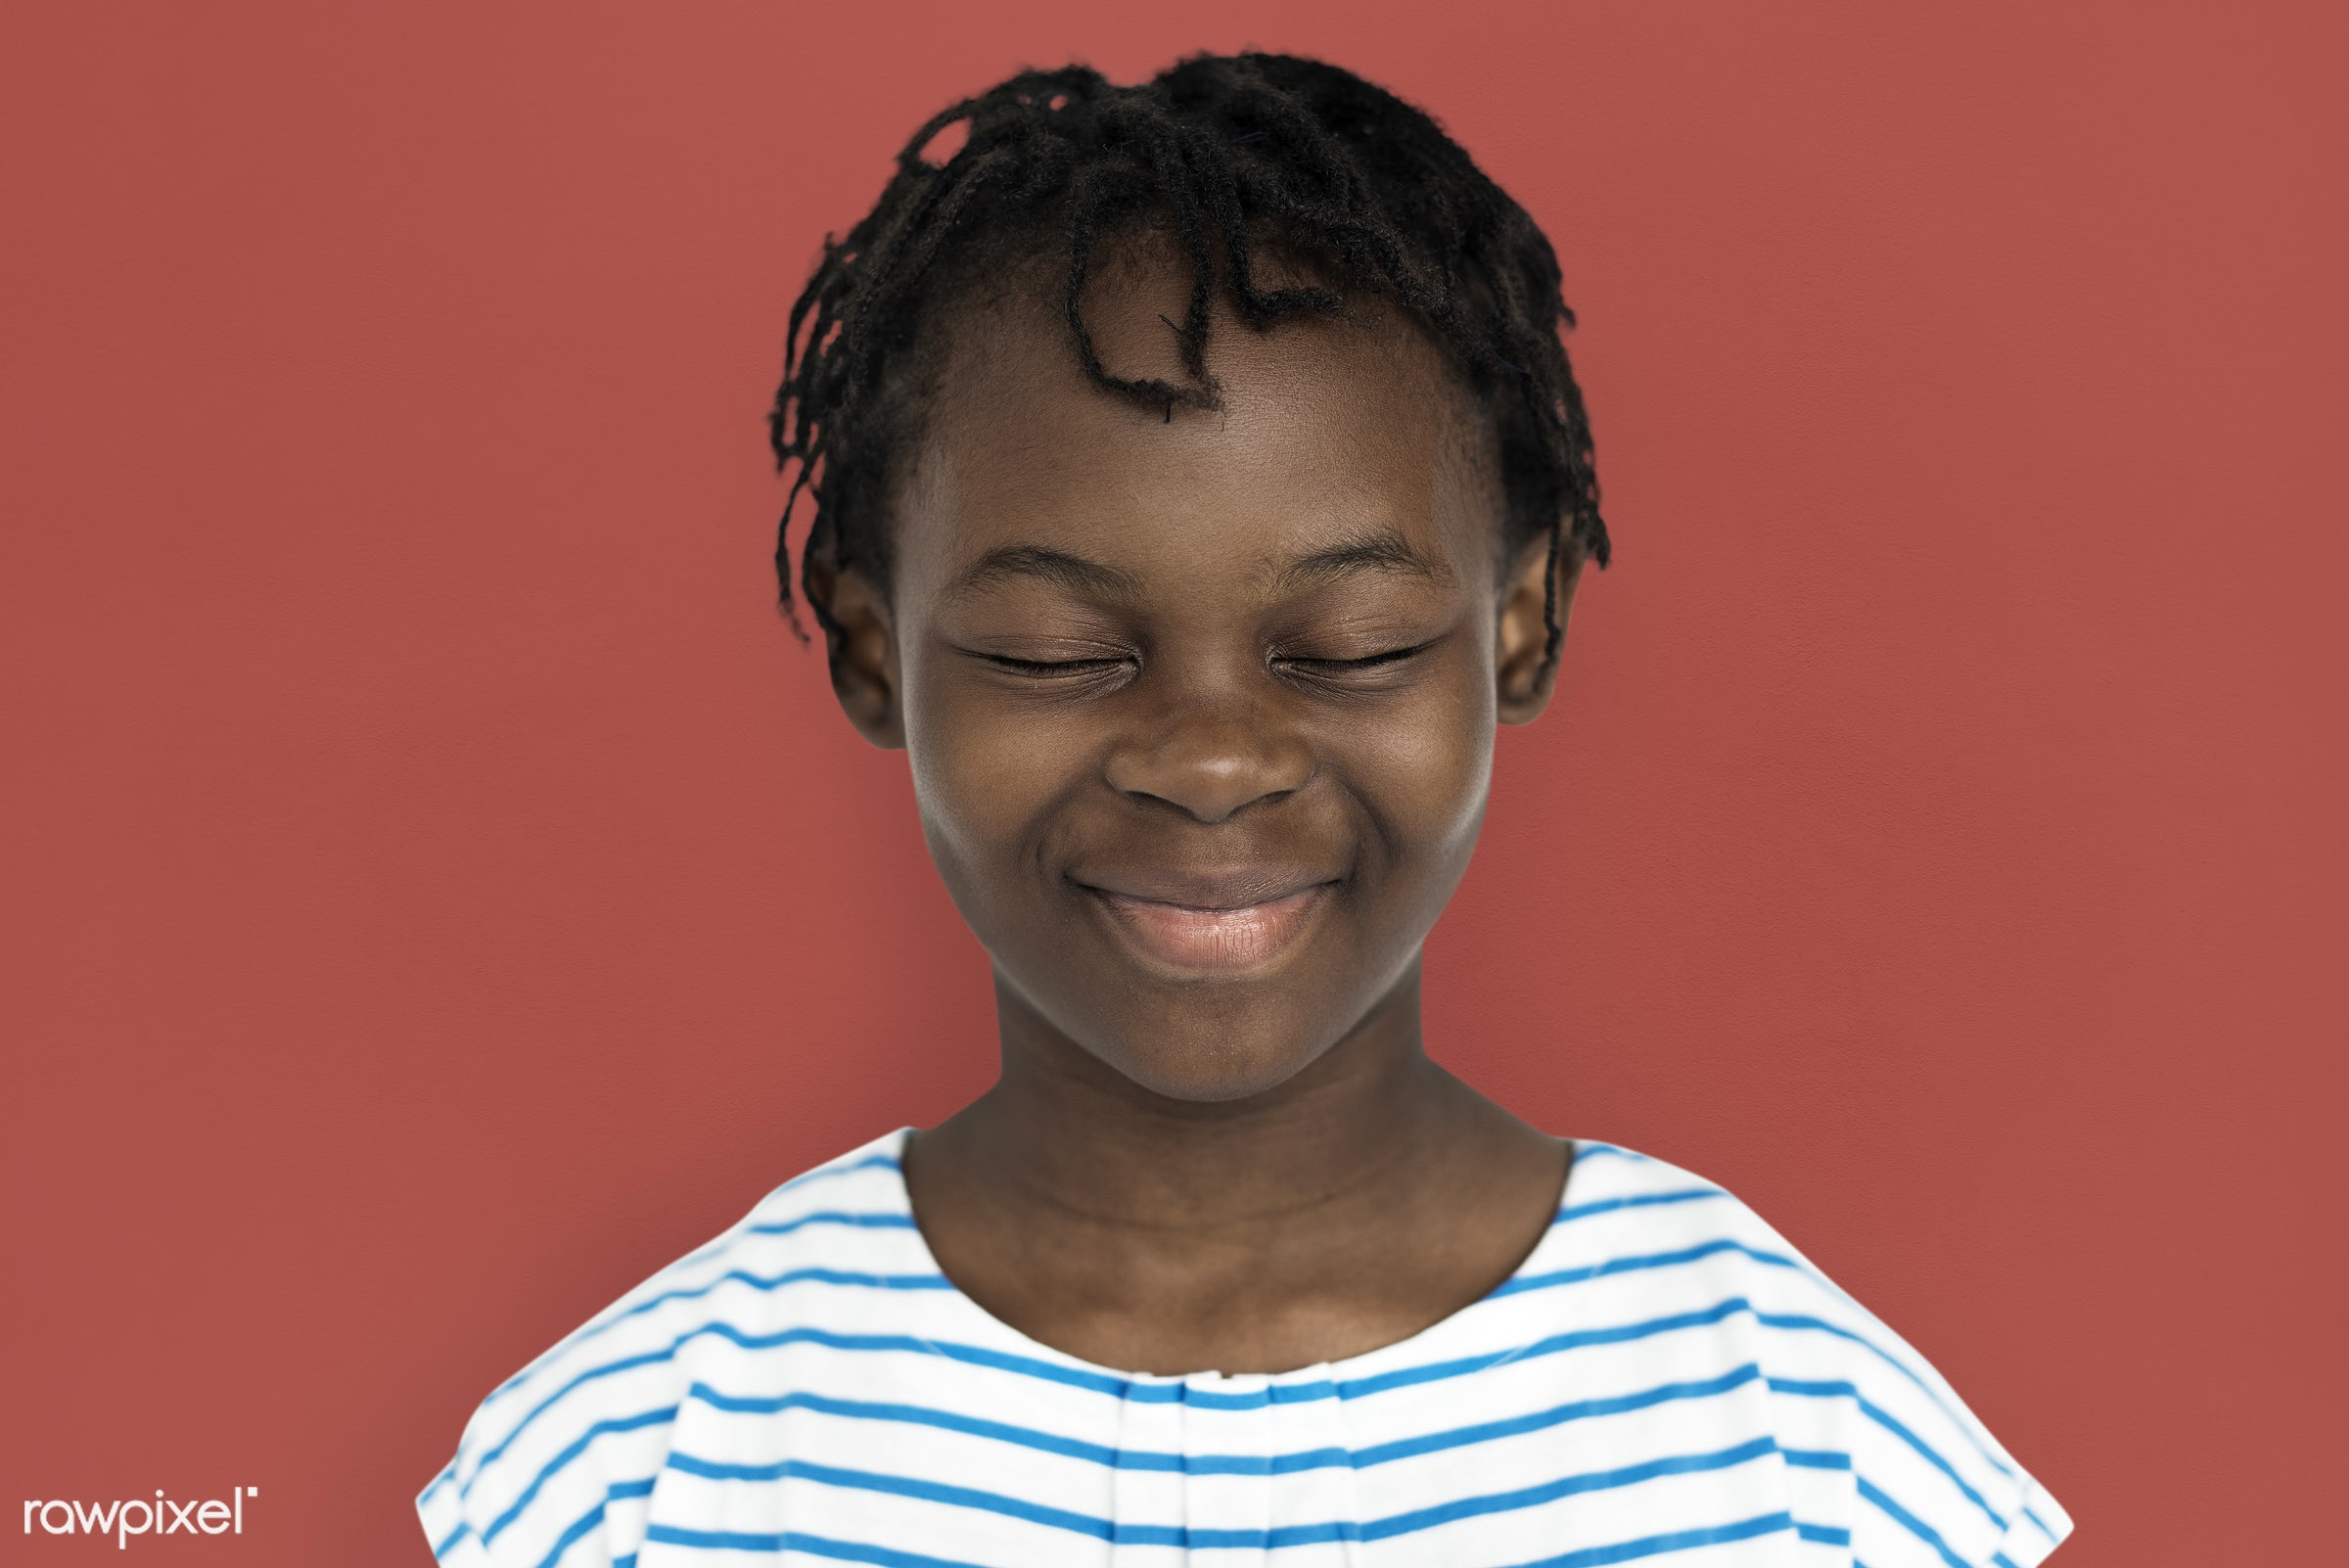 expression, studio, person, little, people, kid, childhood, cheerful, smiling, isolated, white, happiness, fun, youth,...